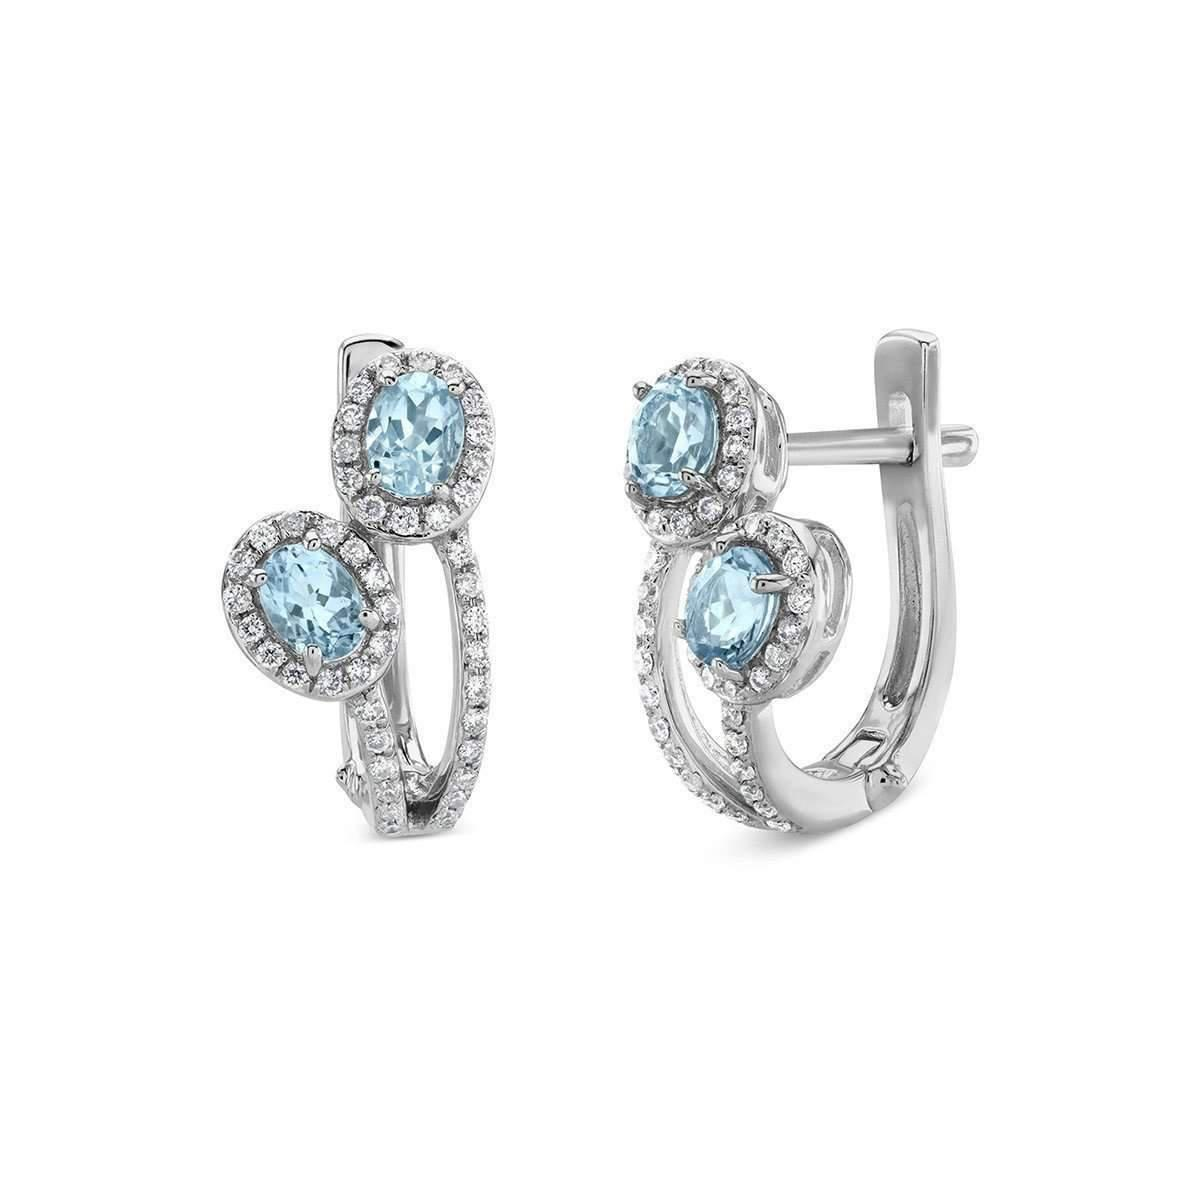 Diamoire Jewels Oval Cut Natural Aquamarine and Diamond Earrings in 18kt Yellow Gold gxrdQTNHDe